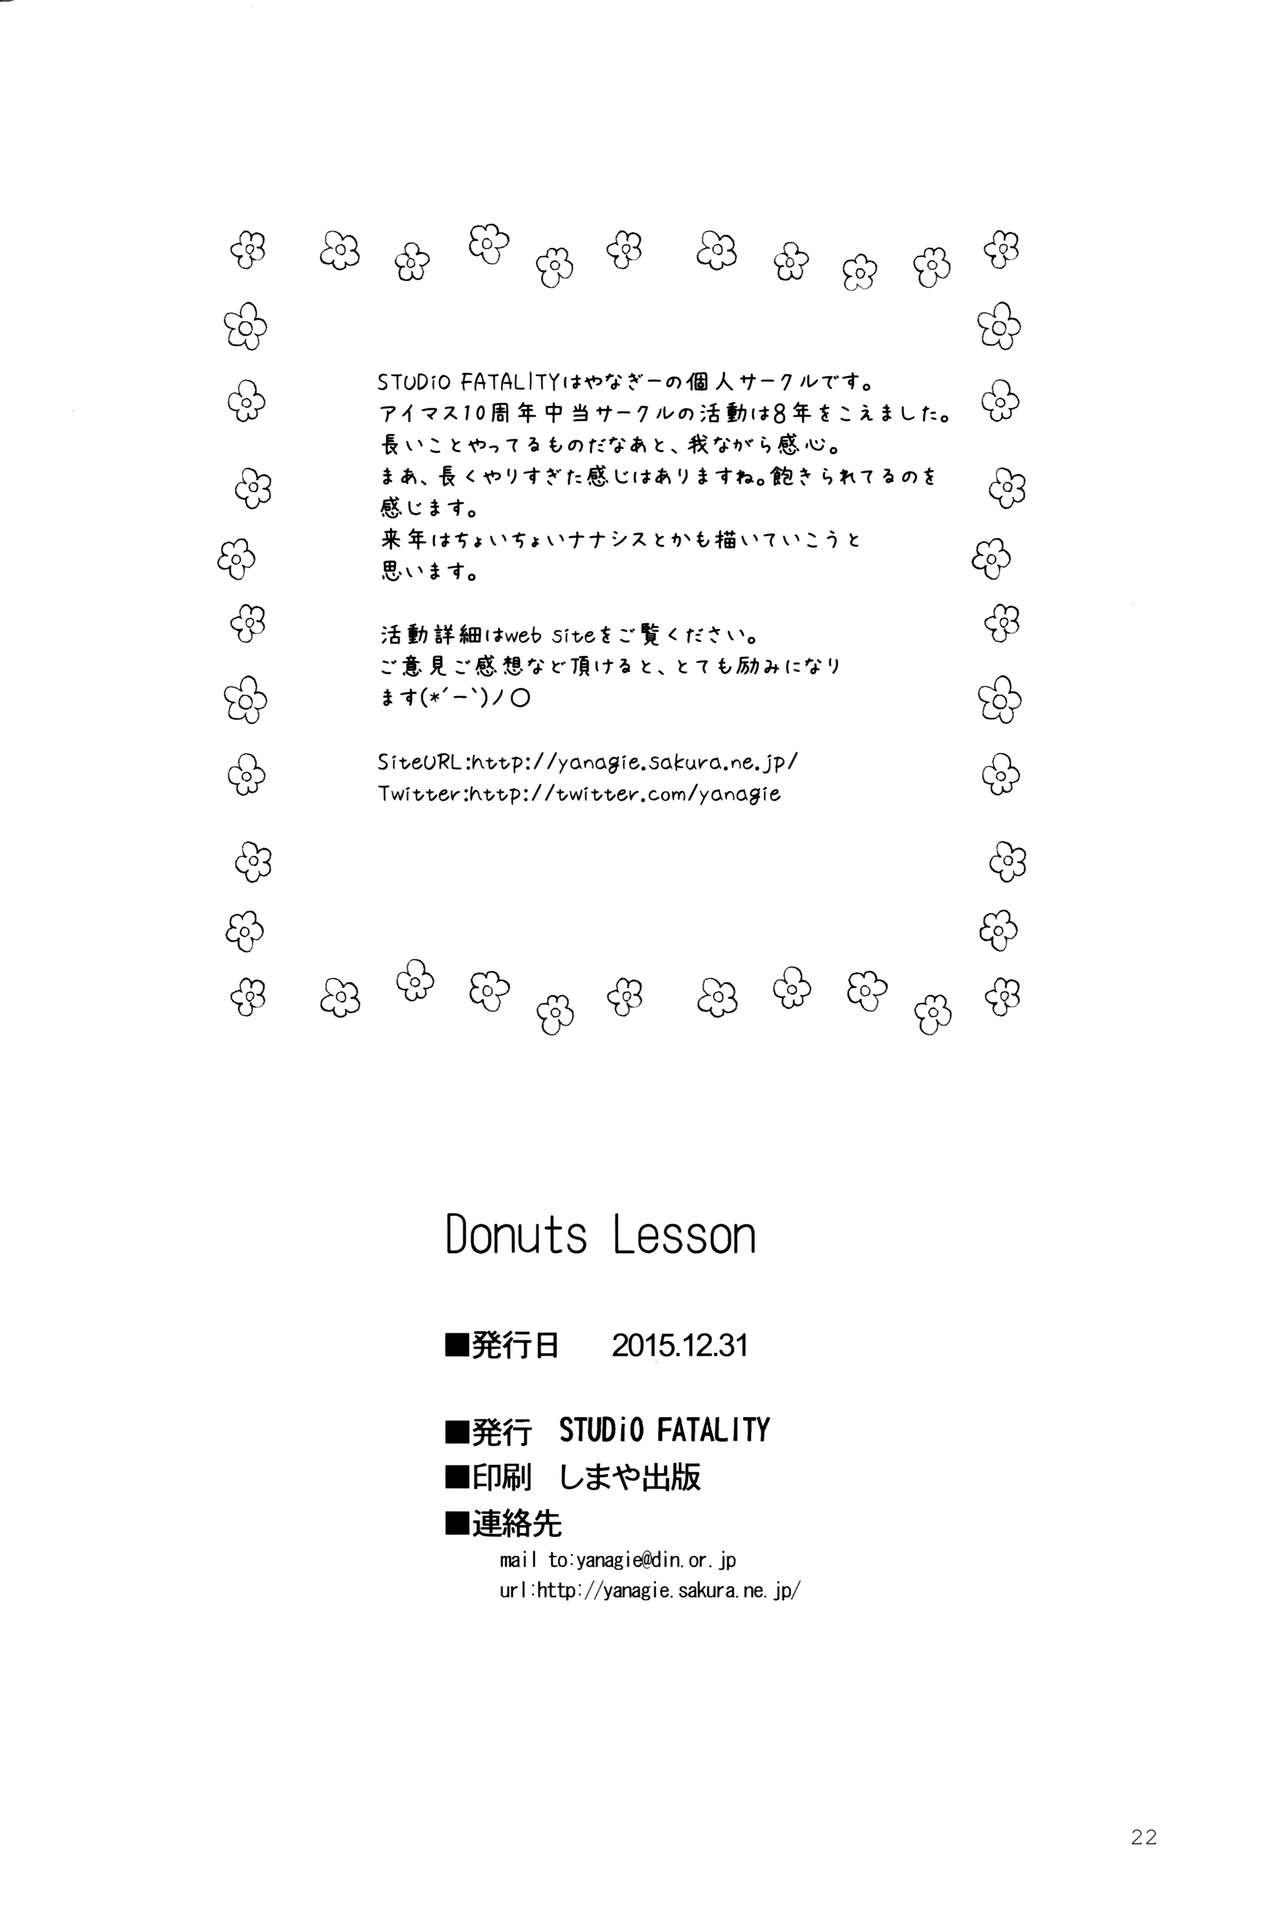 DONUTS LESSON 20